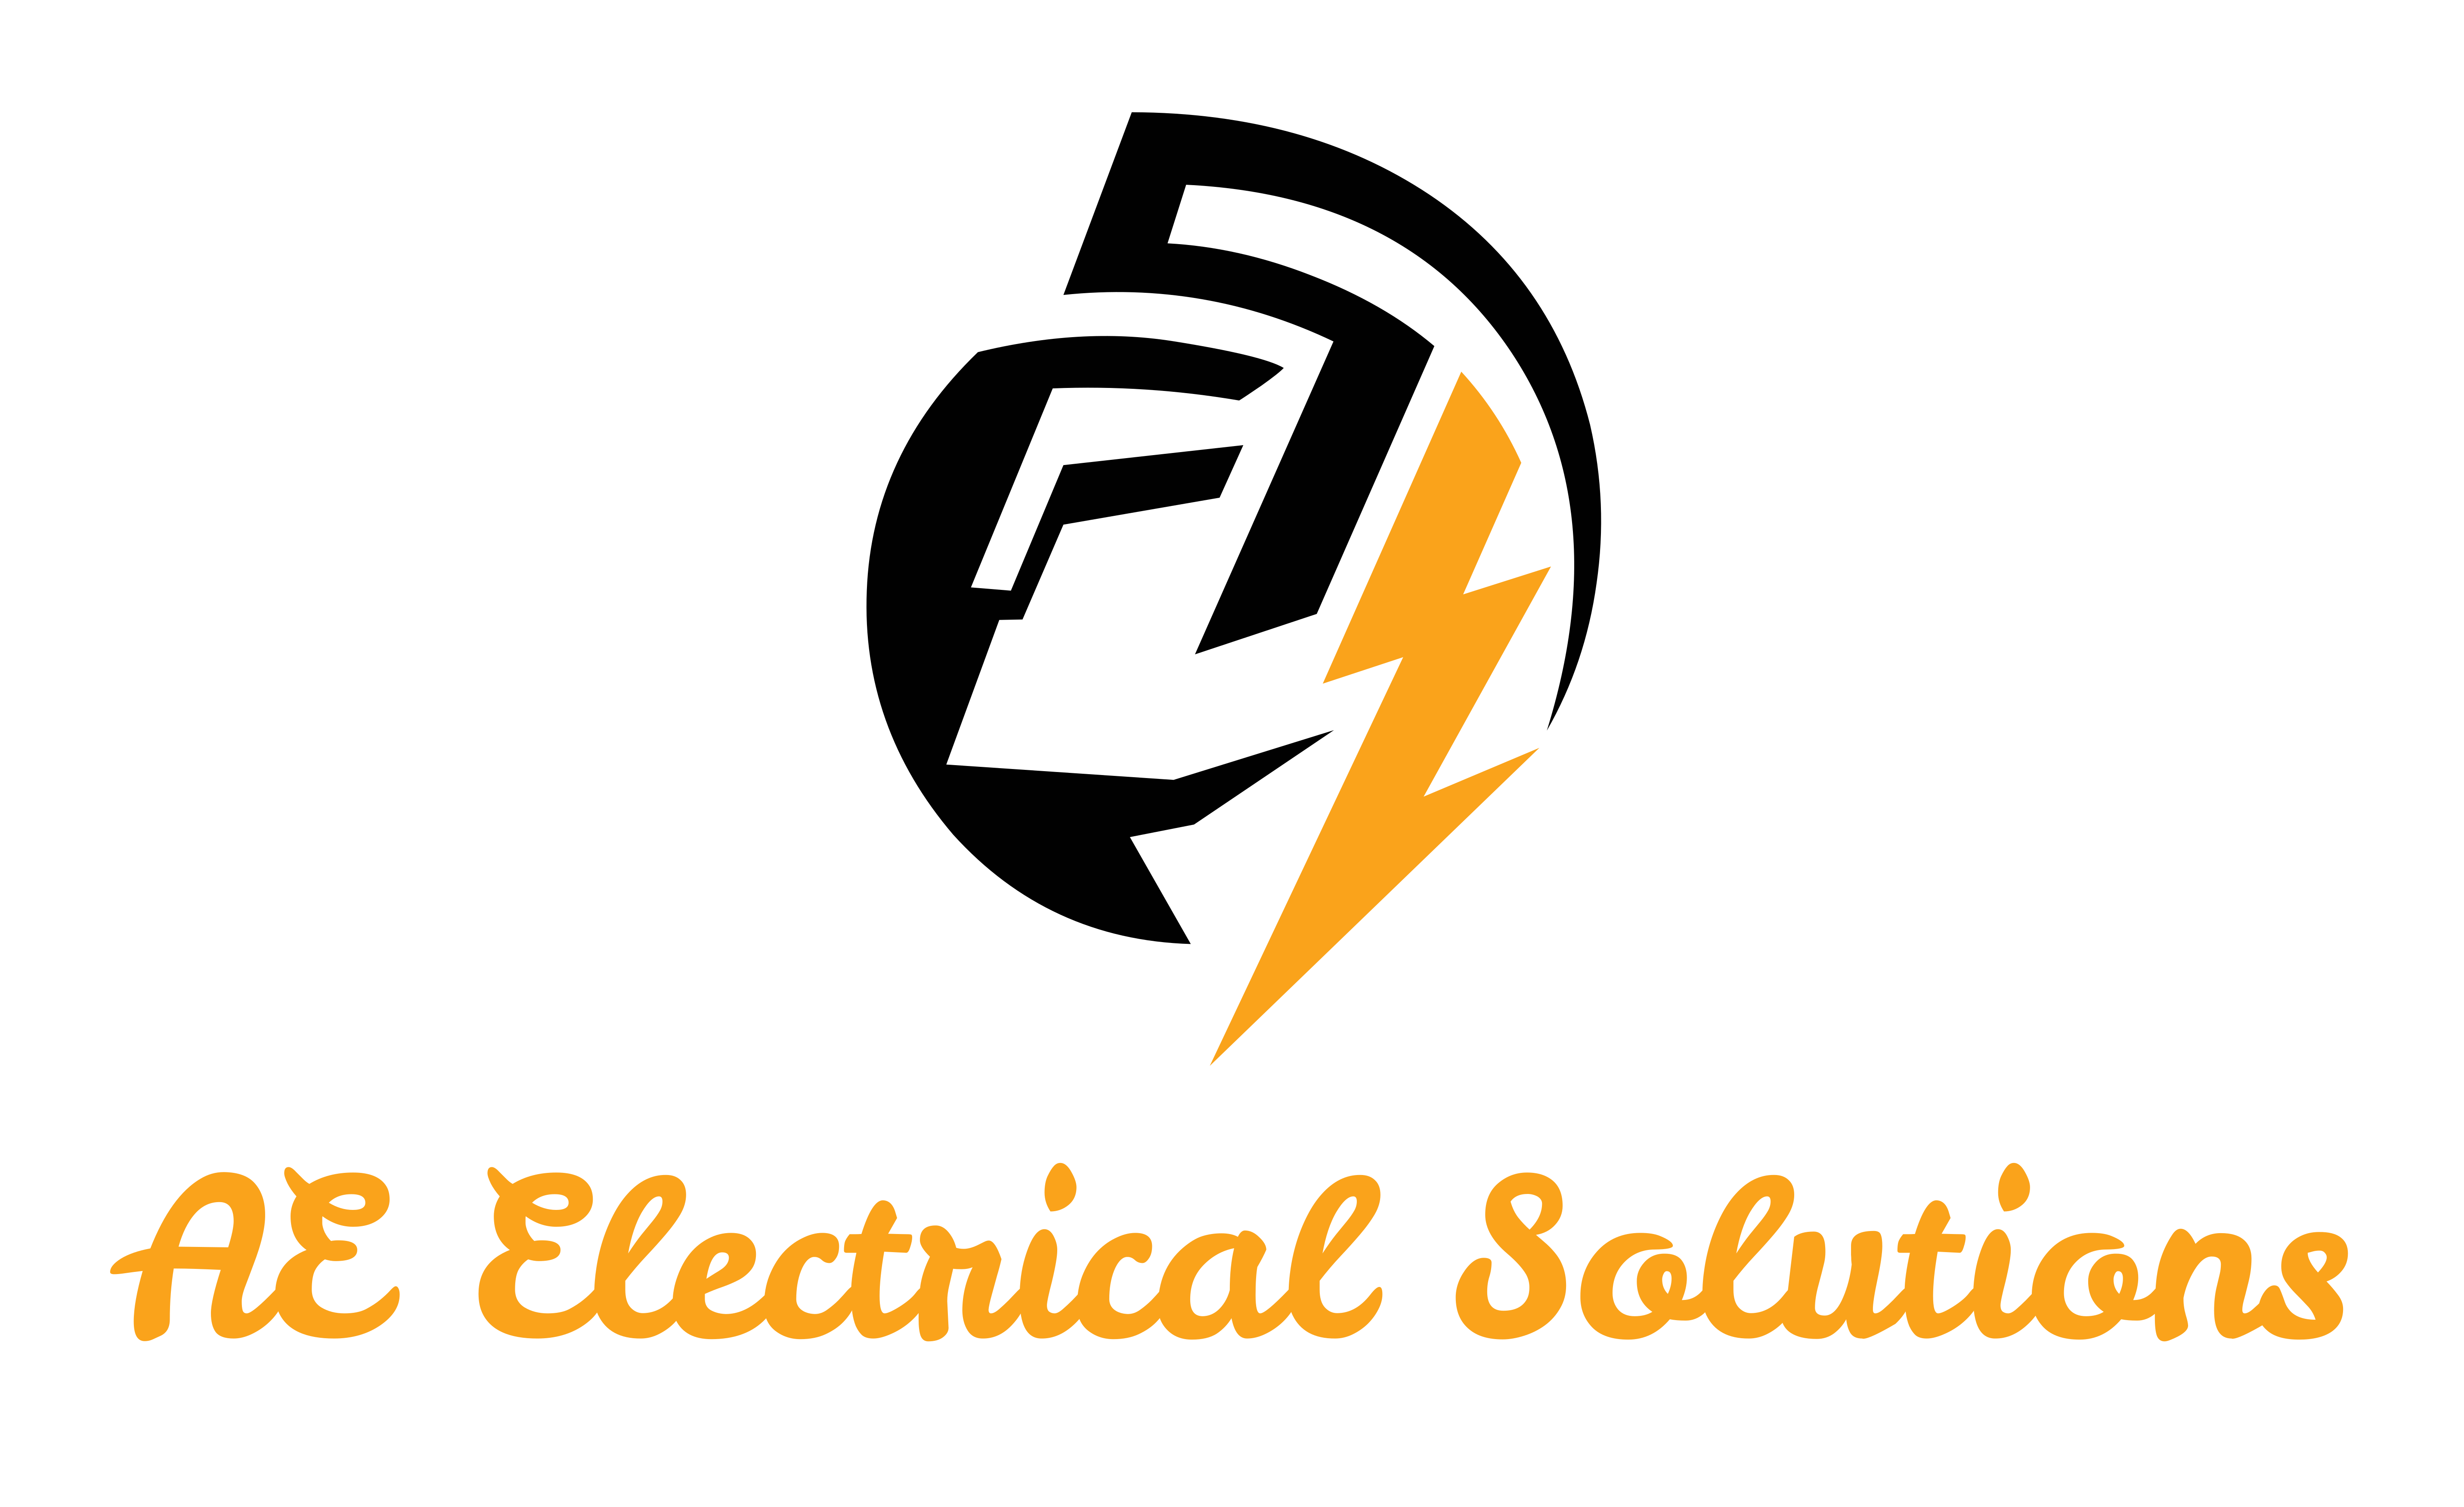 AE Electrical Solutions image